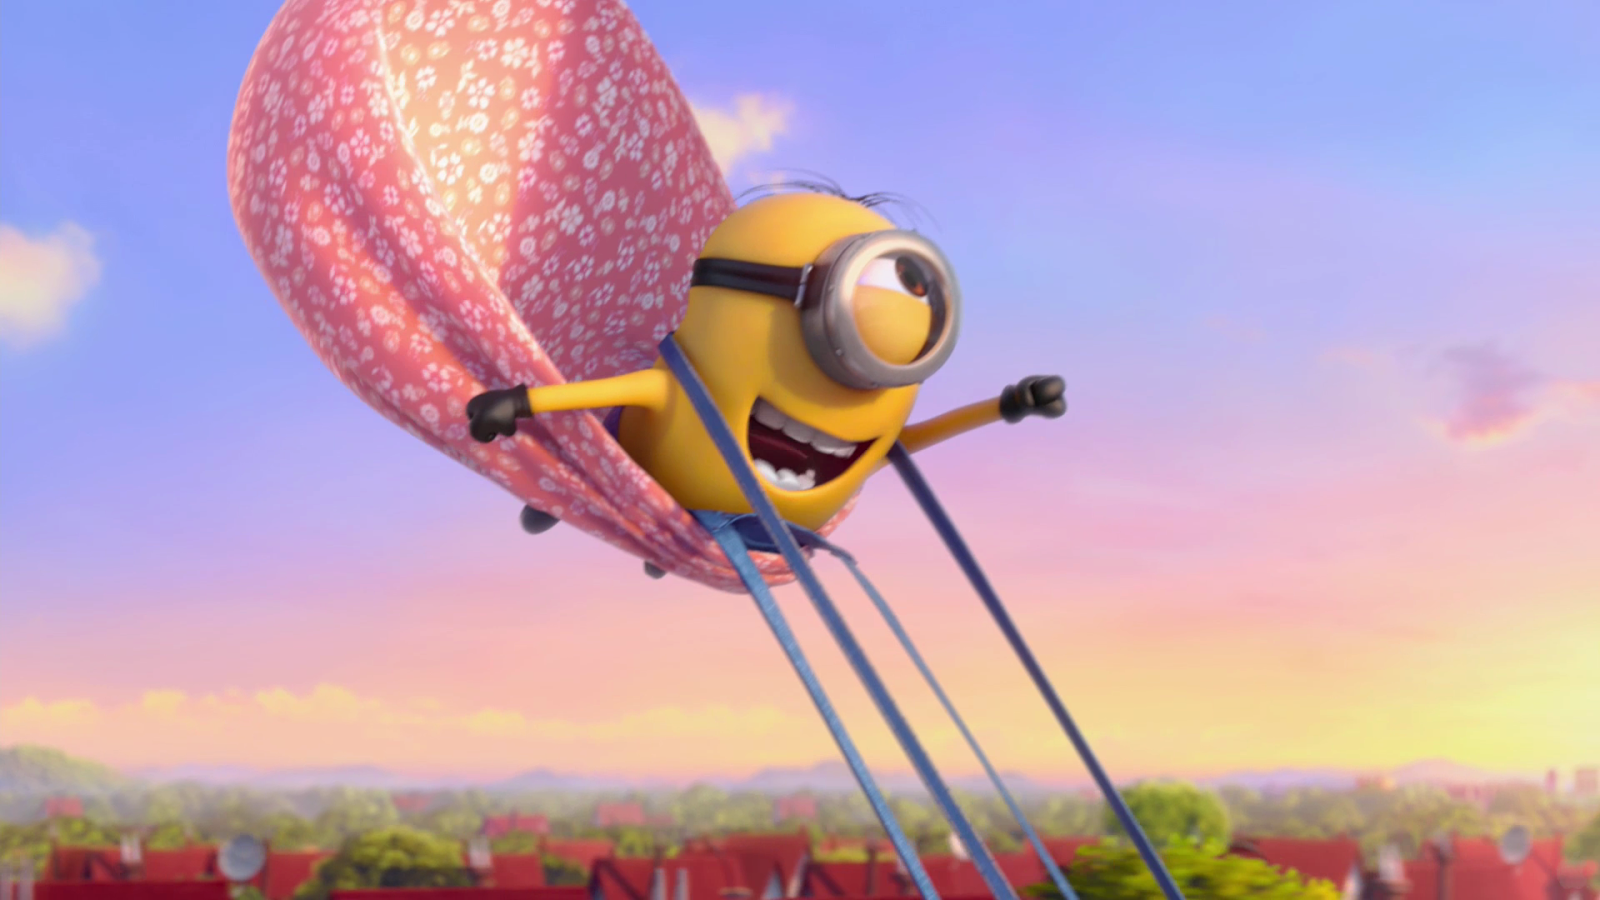 Hd despicable me wallpaper free download hd despicable me wallpaper voltagebd Image collections